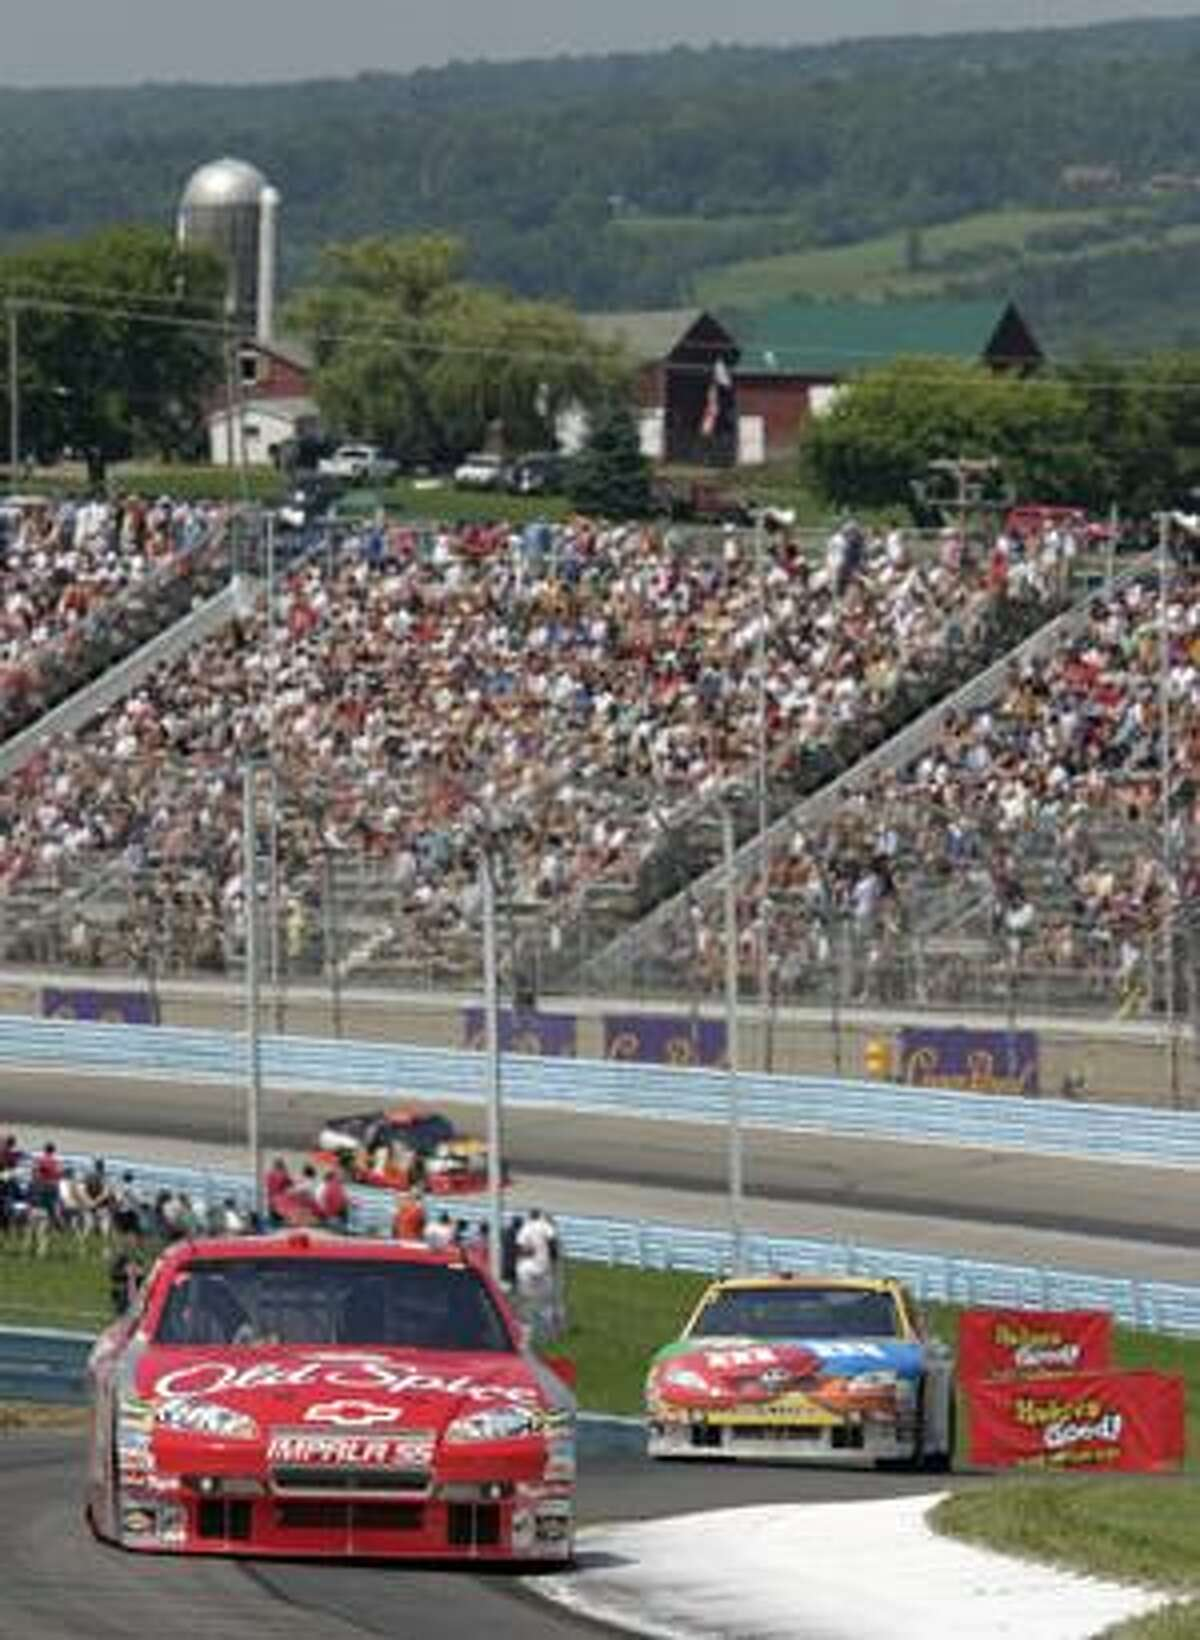 Tony Stewart leads Kyle Busch through the esses during the NASCAR Sprint Cup Series' Heluva Good! Sour Cream Dips at The Glen Monday in Watkins Glen, N.Y. Stewart won the race, and Busch finished fourth.